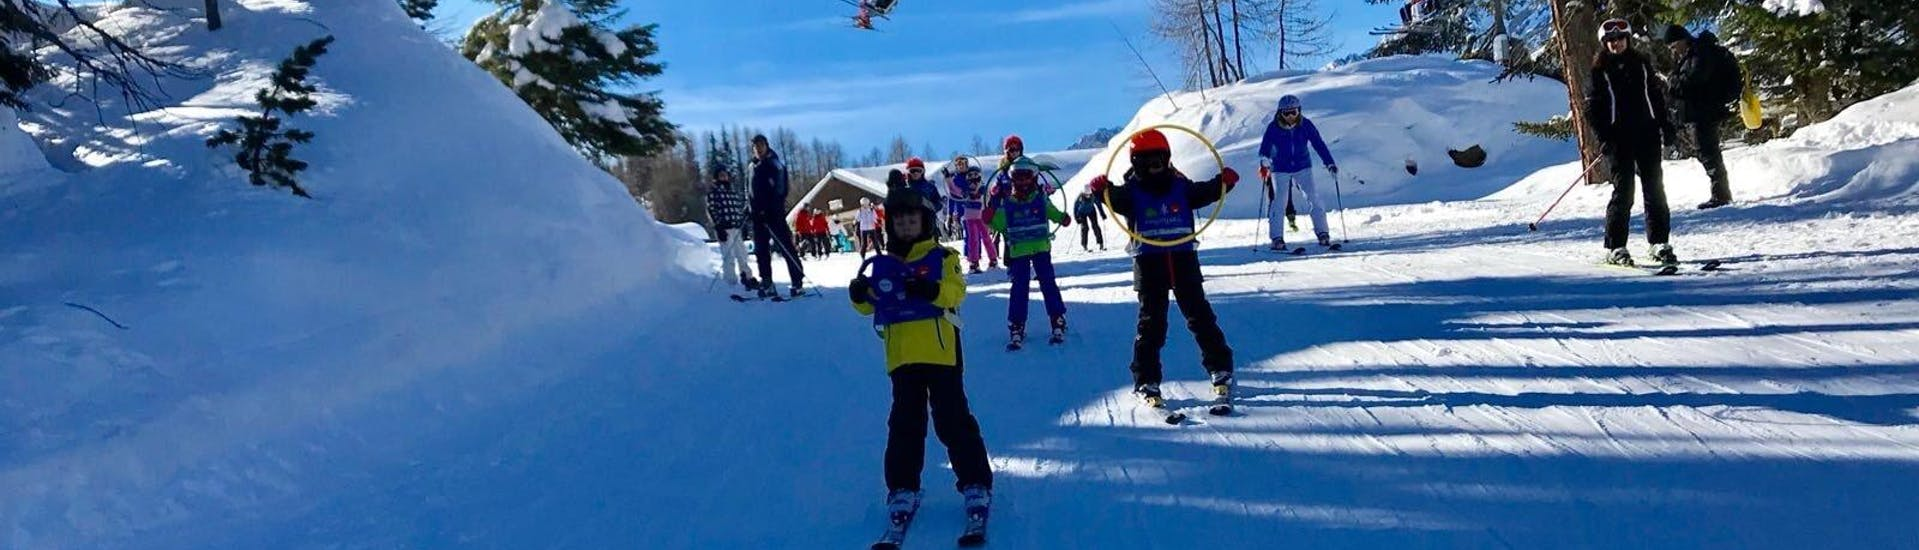 Kids Ski Lessons (5-12 y.) for All Levels - Weekend